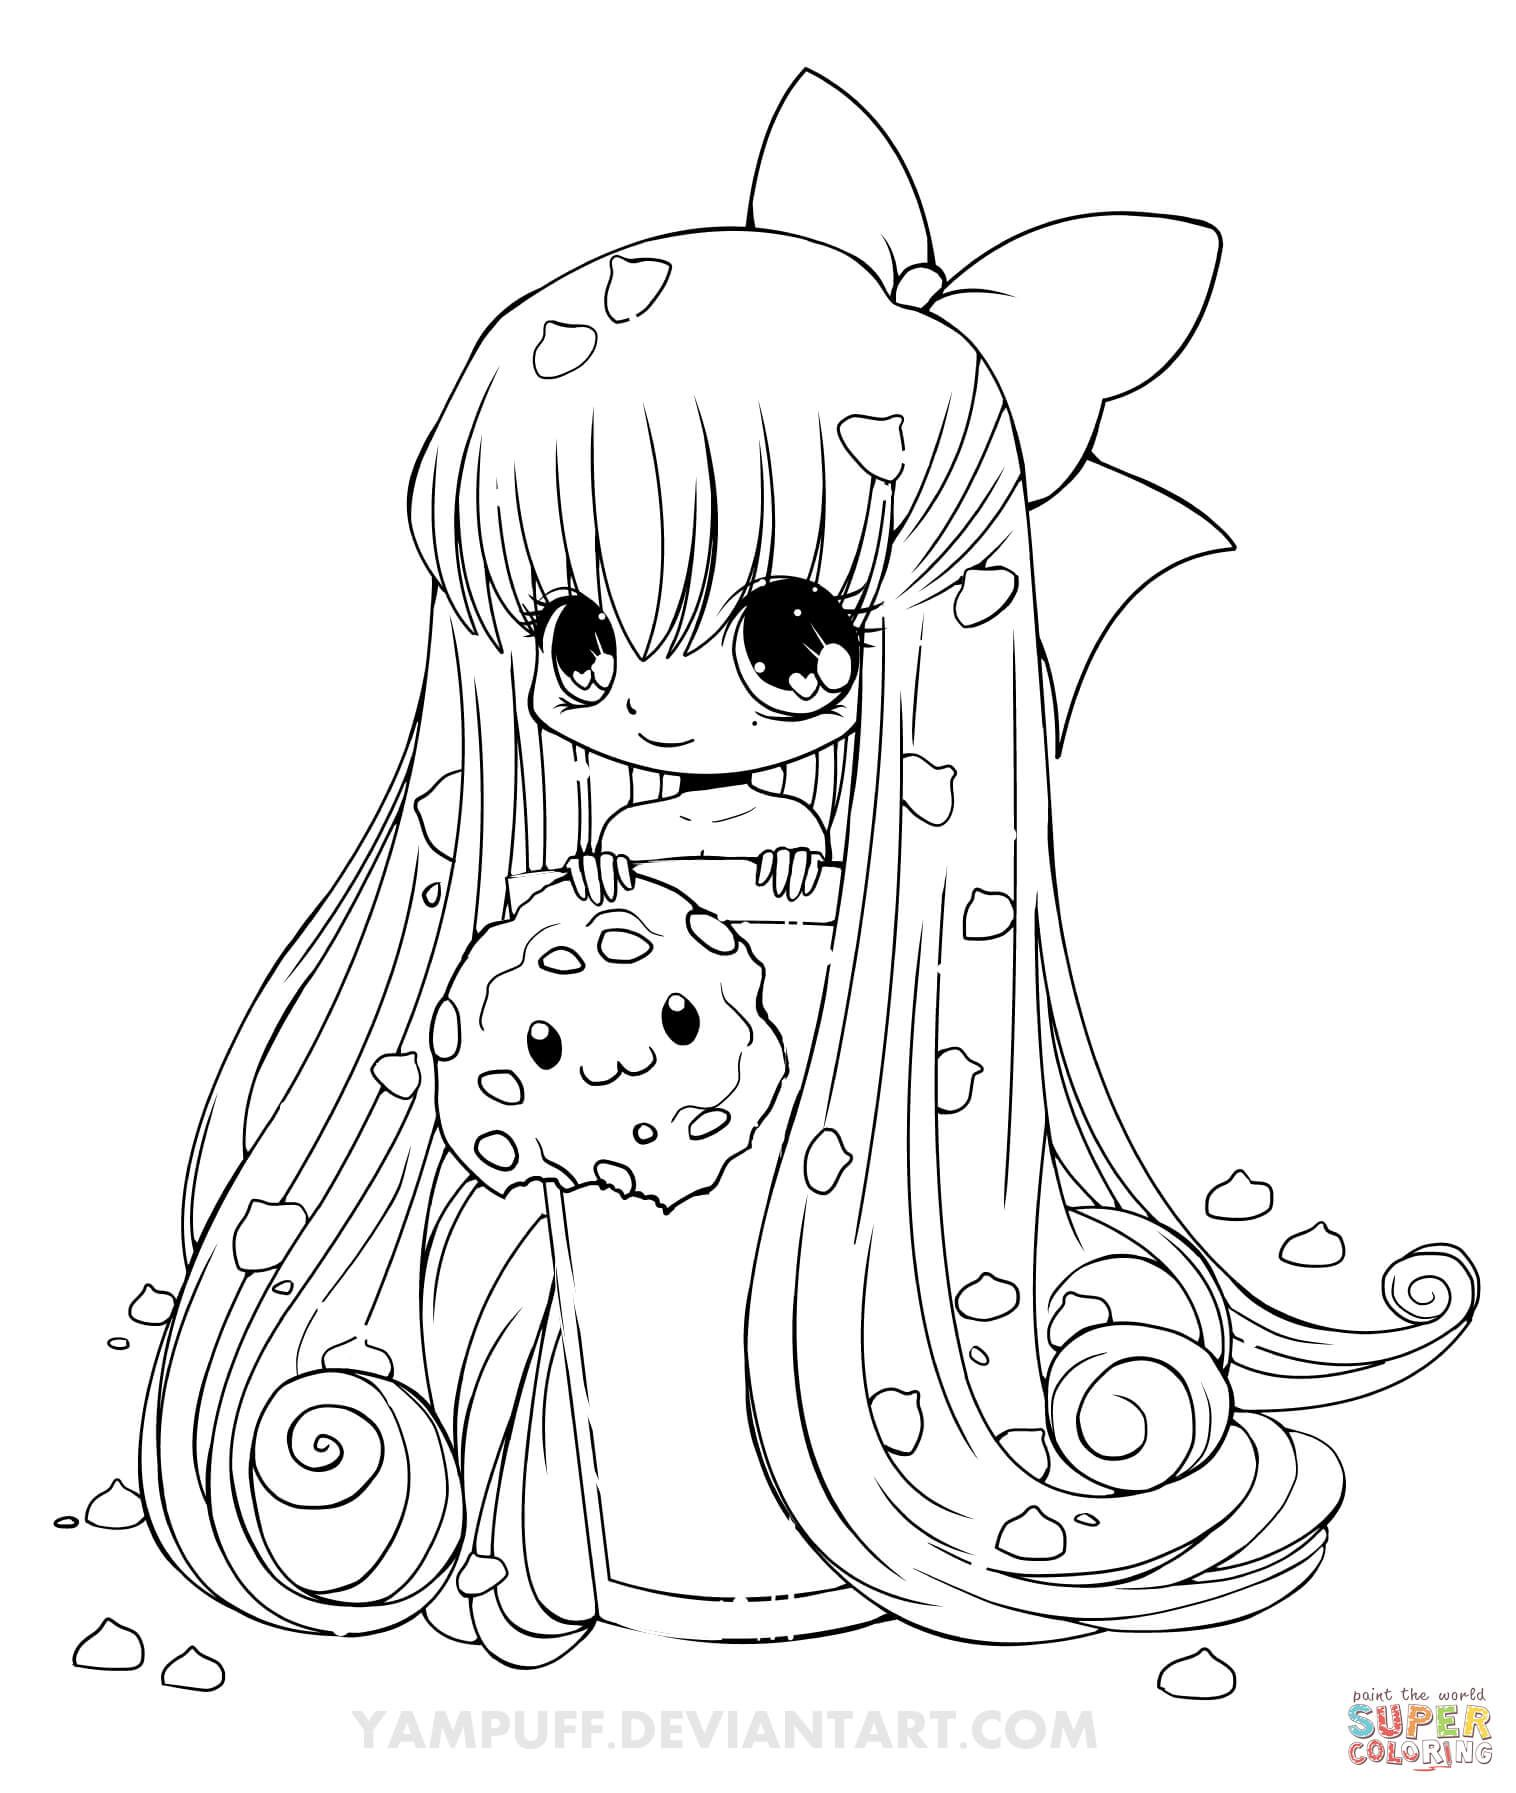 Yampuff Fanclub Kleurplaat Google Zoeken Chibi Coloring Pages Cute Coloring Pages Animal Coloring Pages